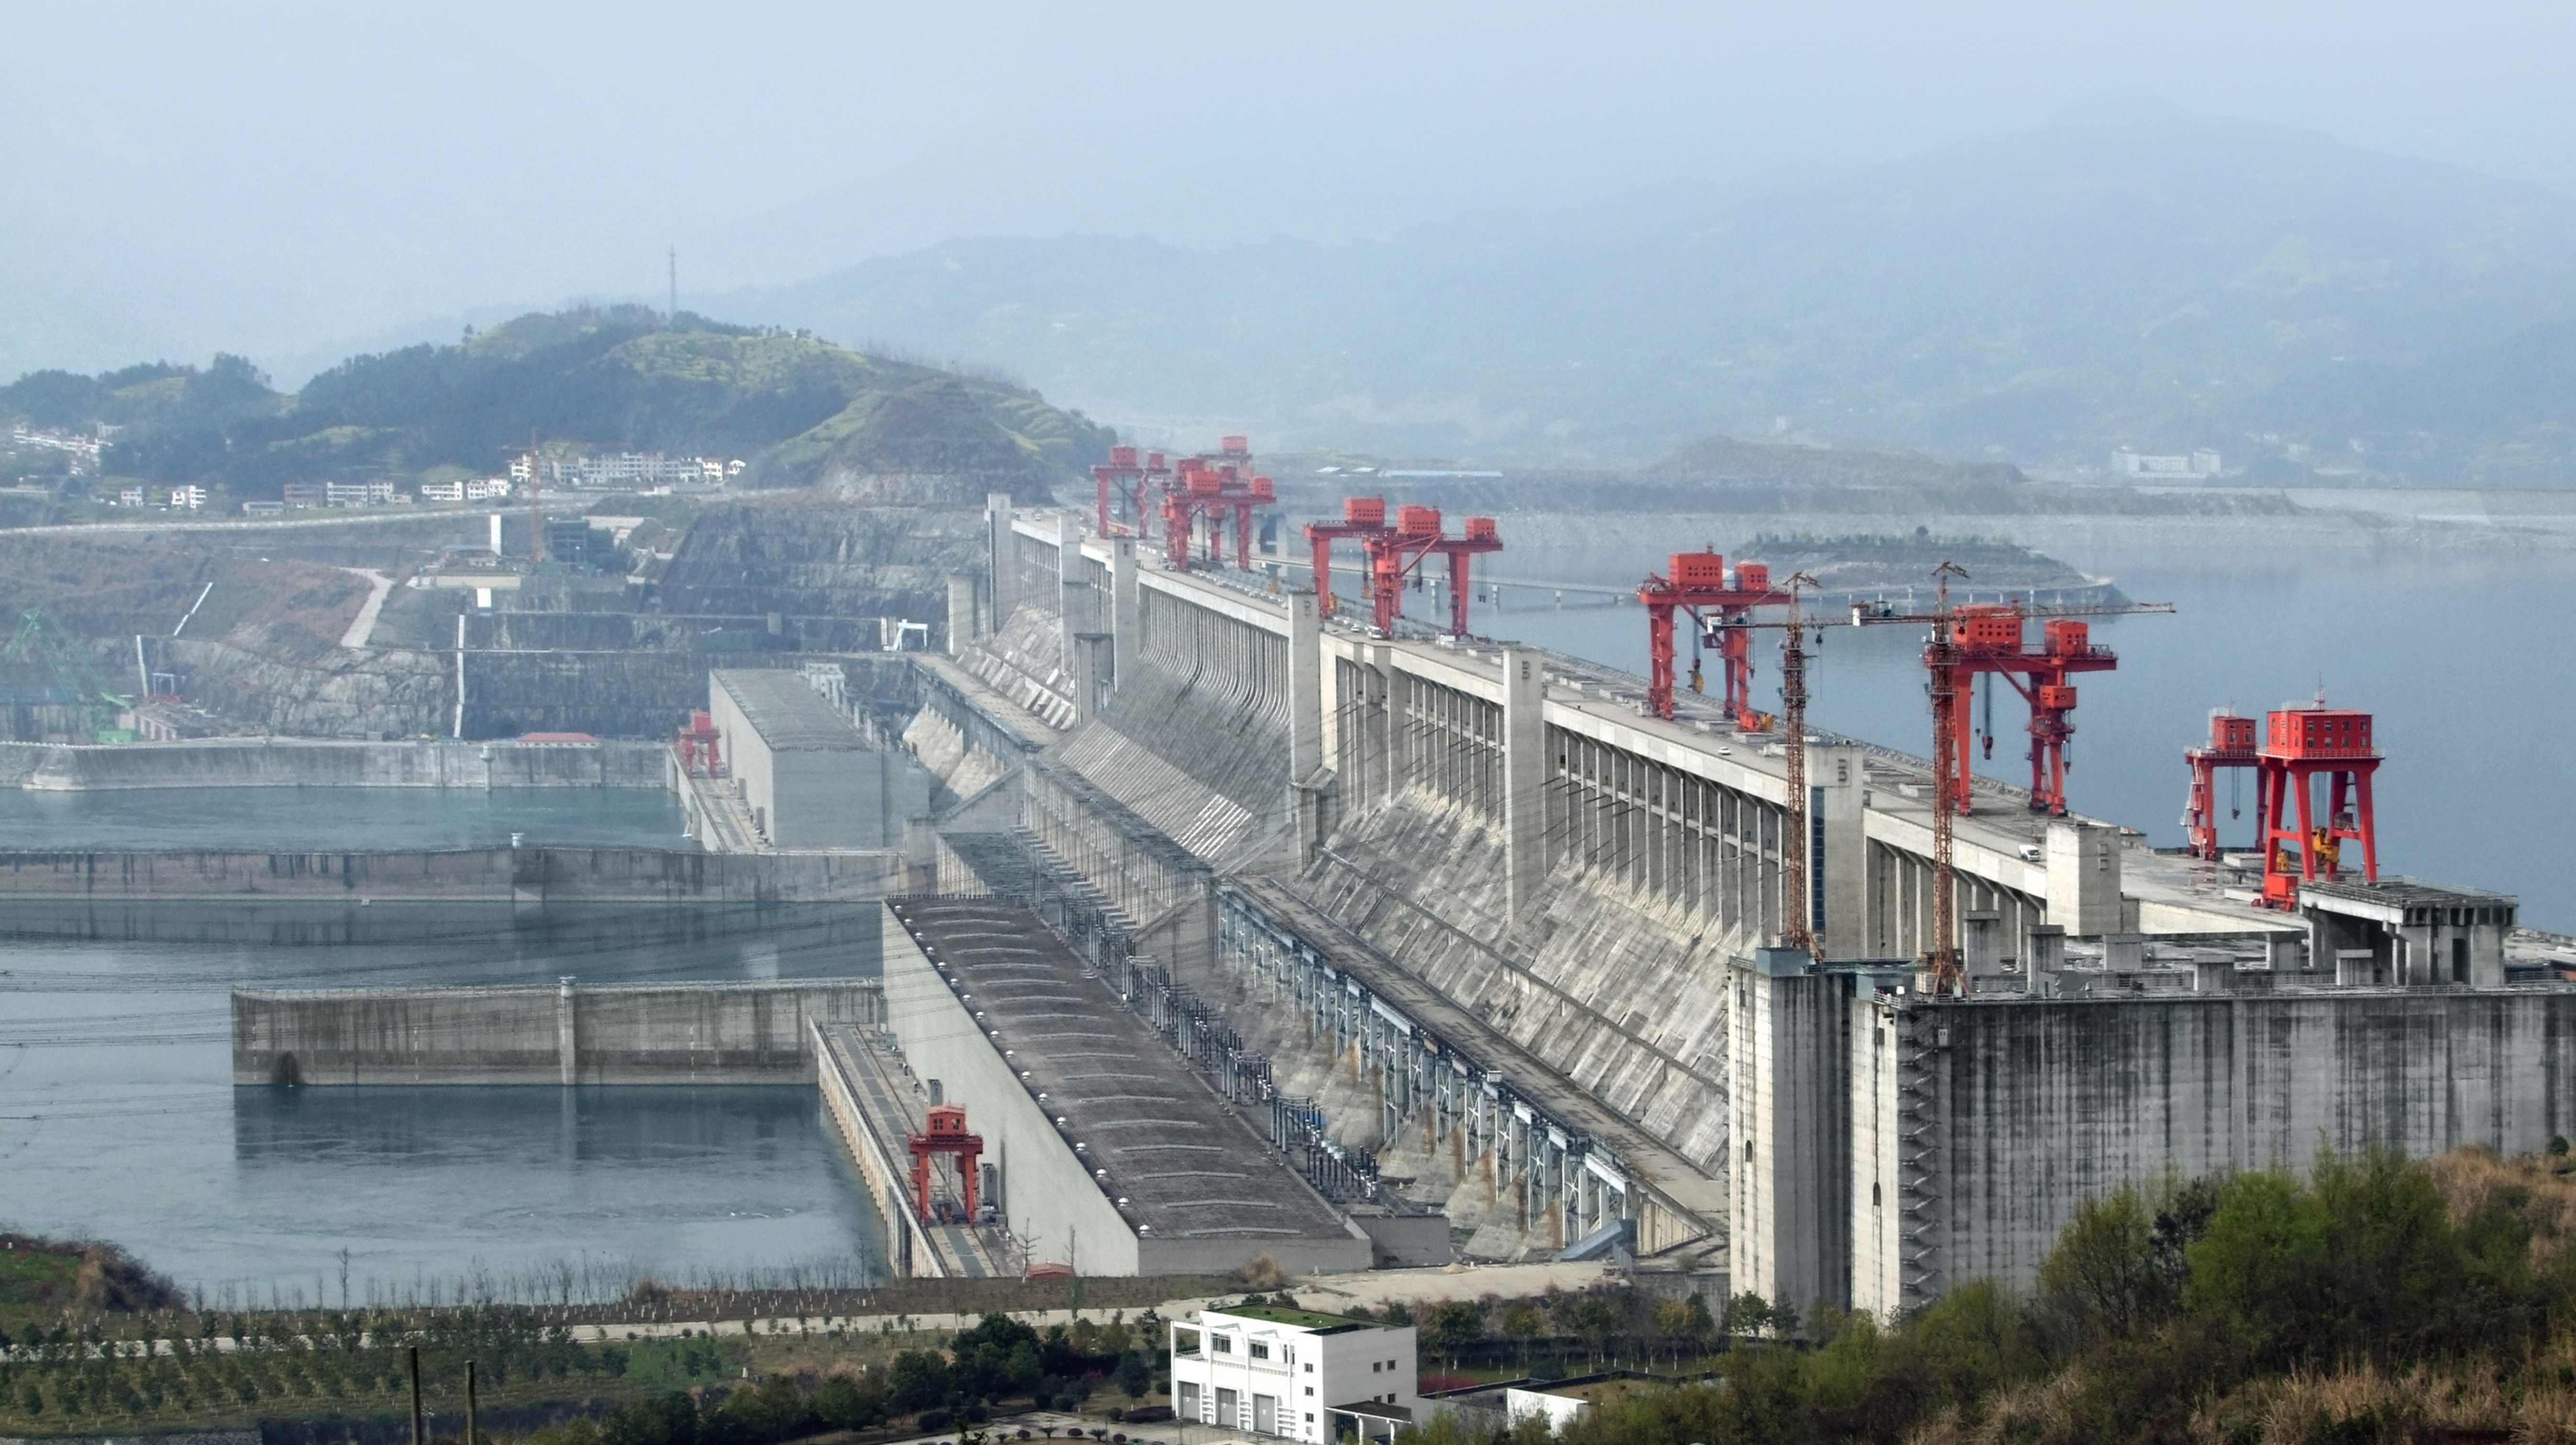 Three gorges dam project china s biggest project since the great wall - 1 2 3